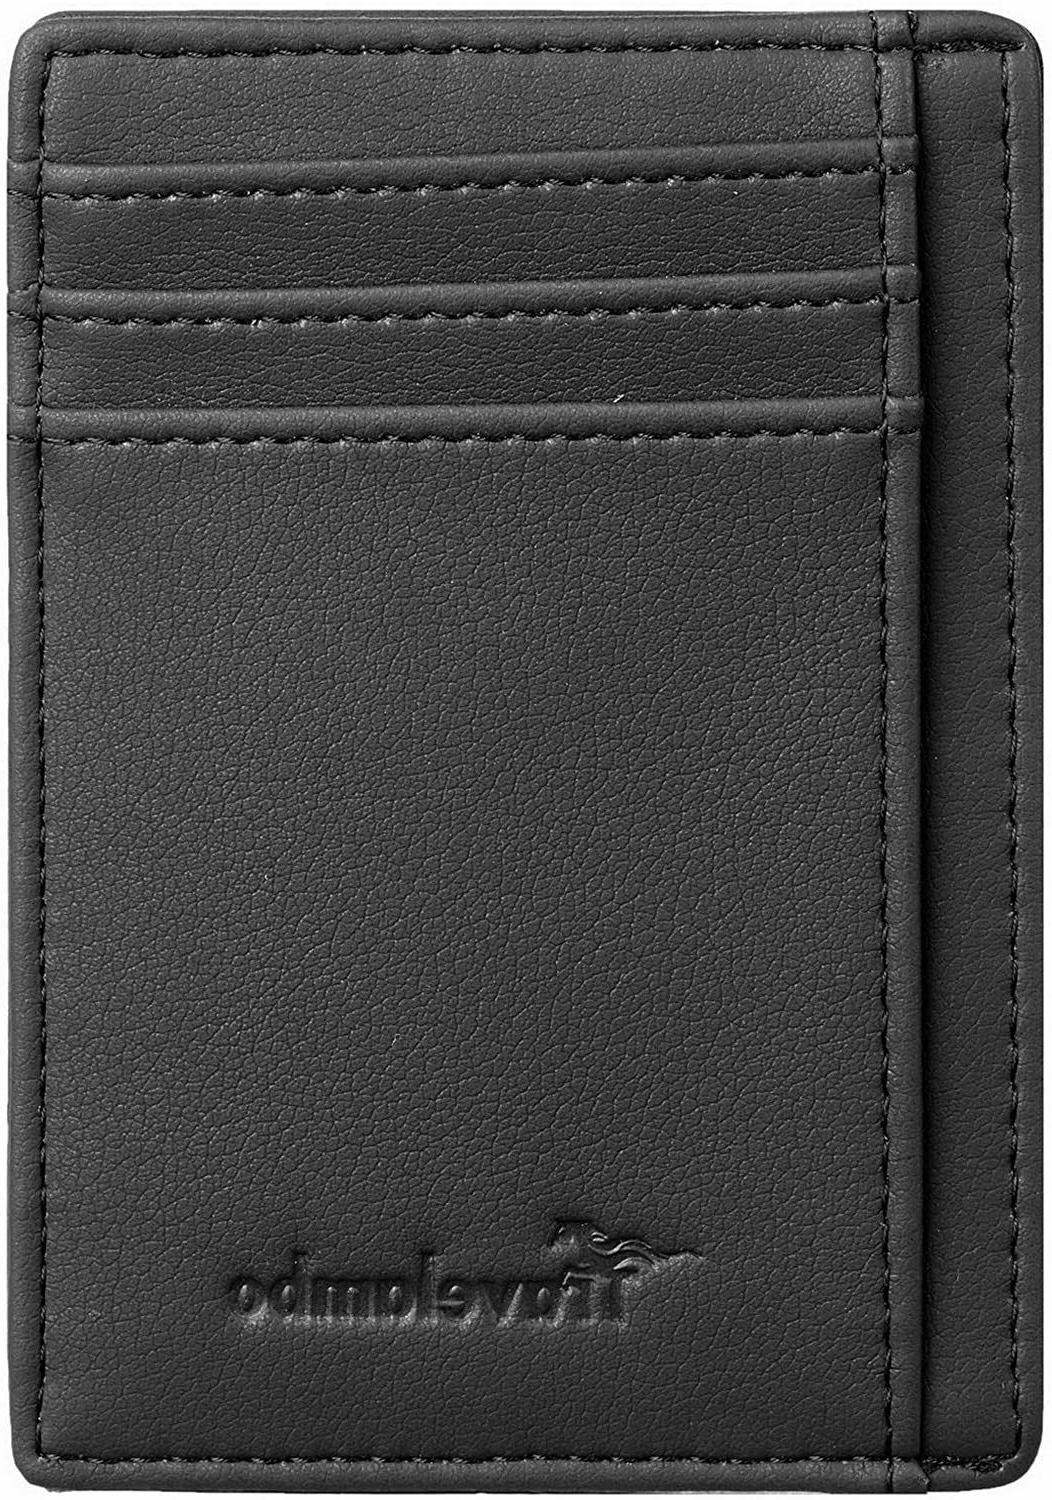 Mens black Leather Credit Holder